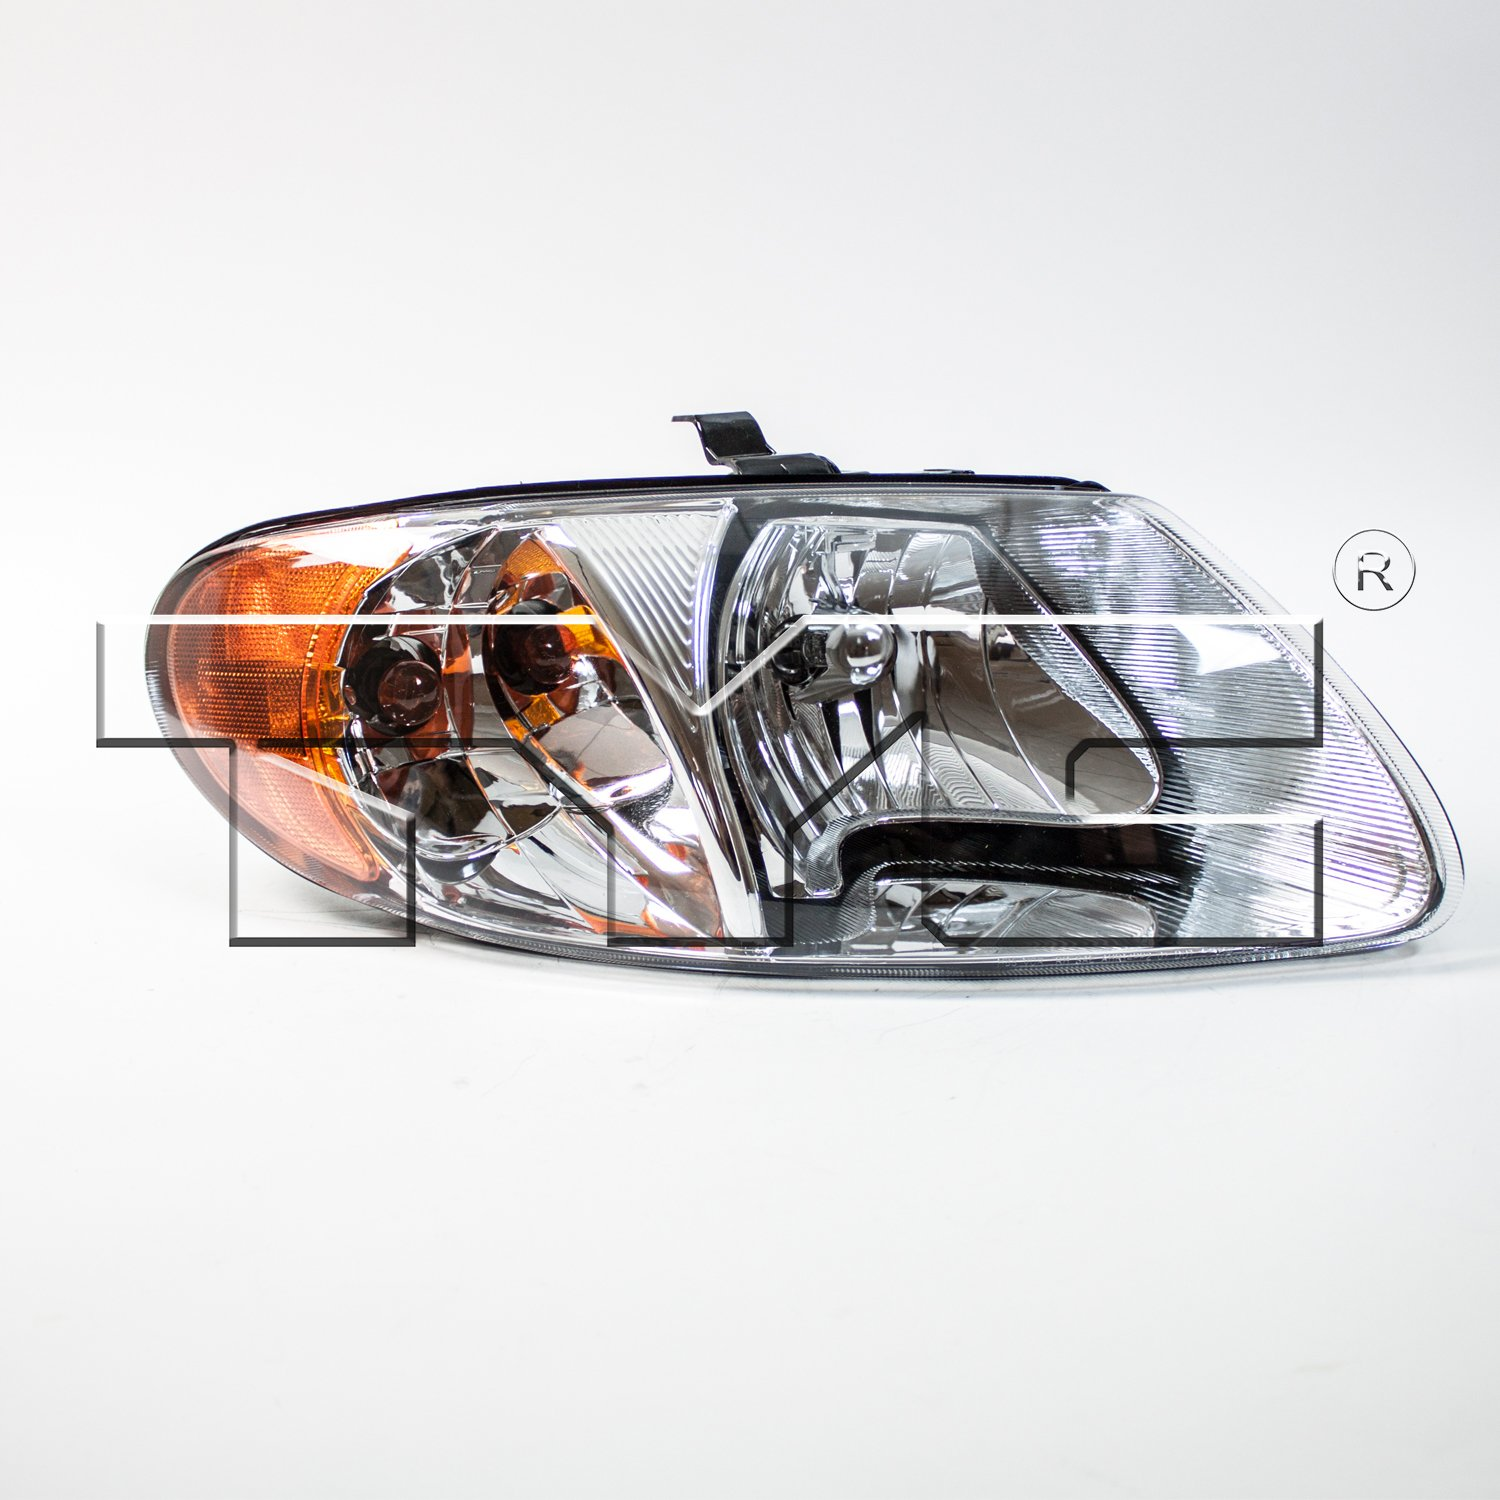 2001 Chrysler Town Country Headlight Embly Ty 20 6021 00 1